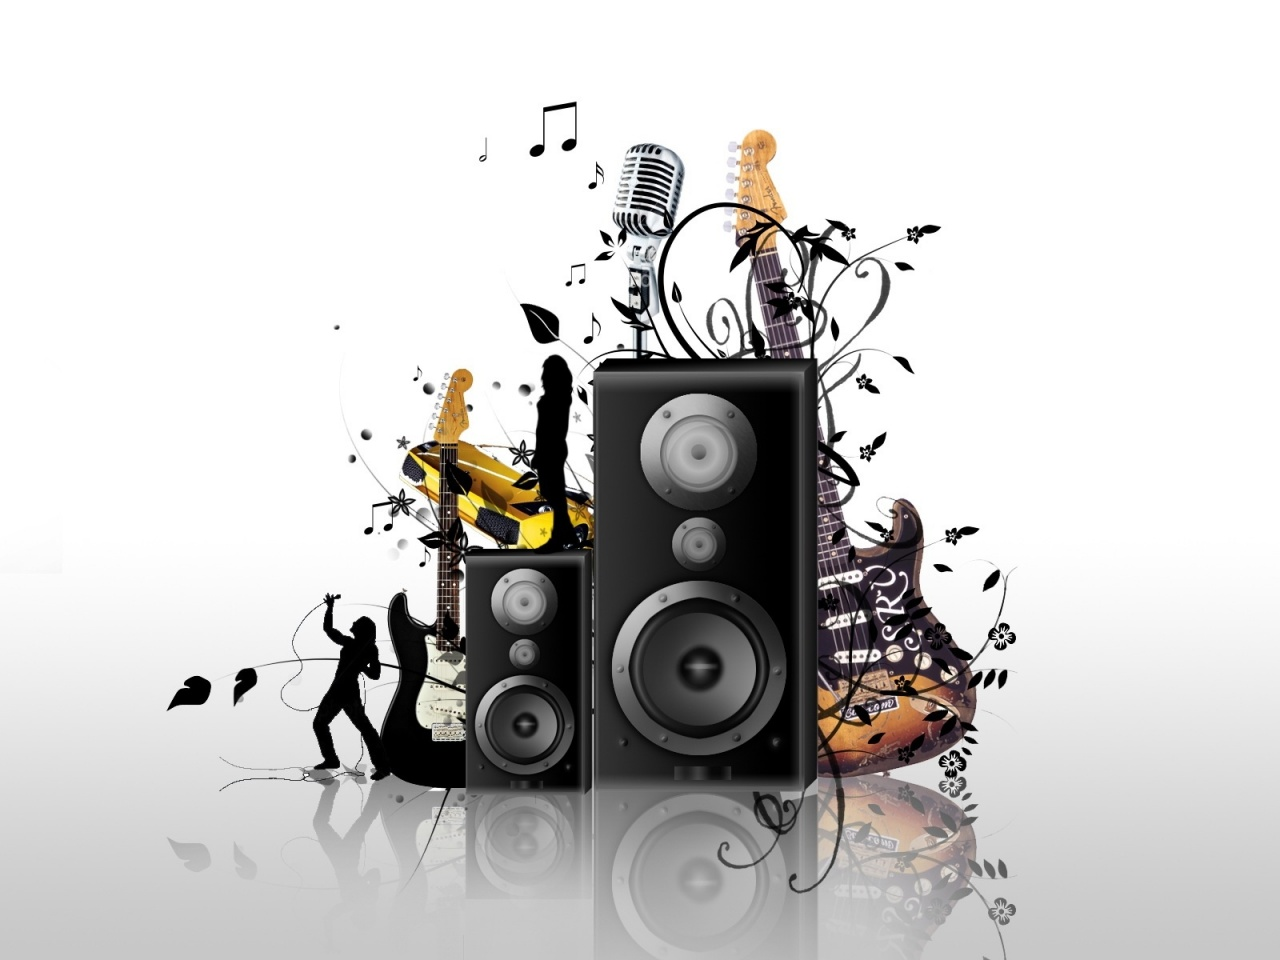 Music Wallpapers & Backgrounds images